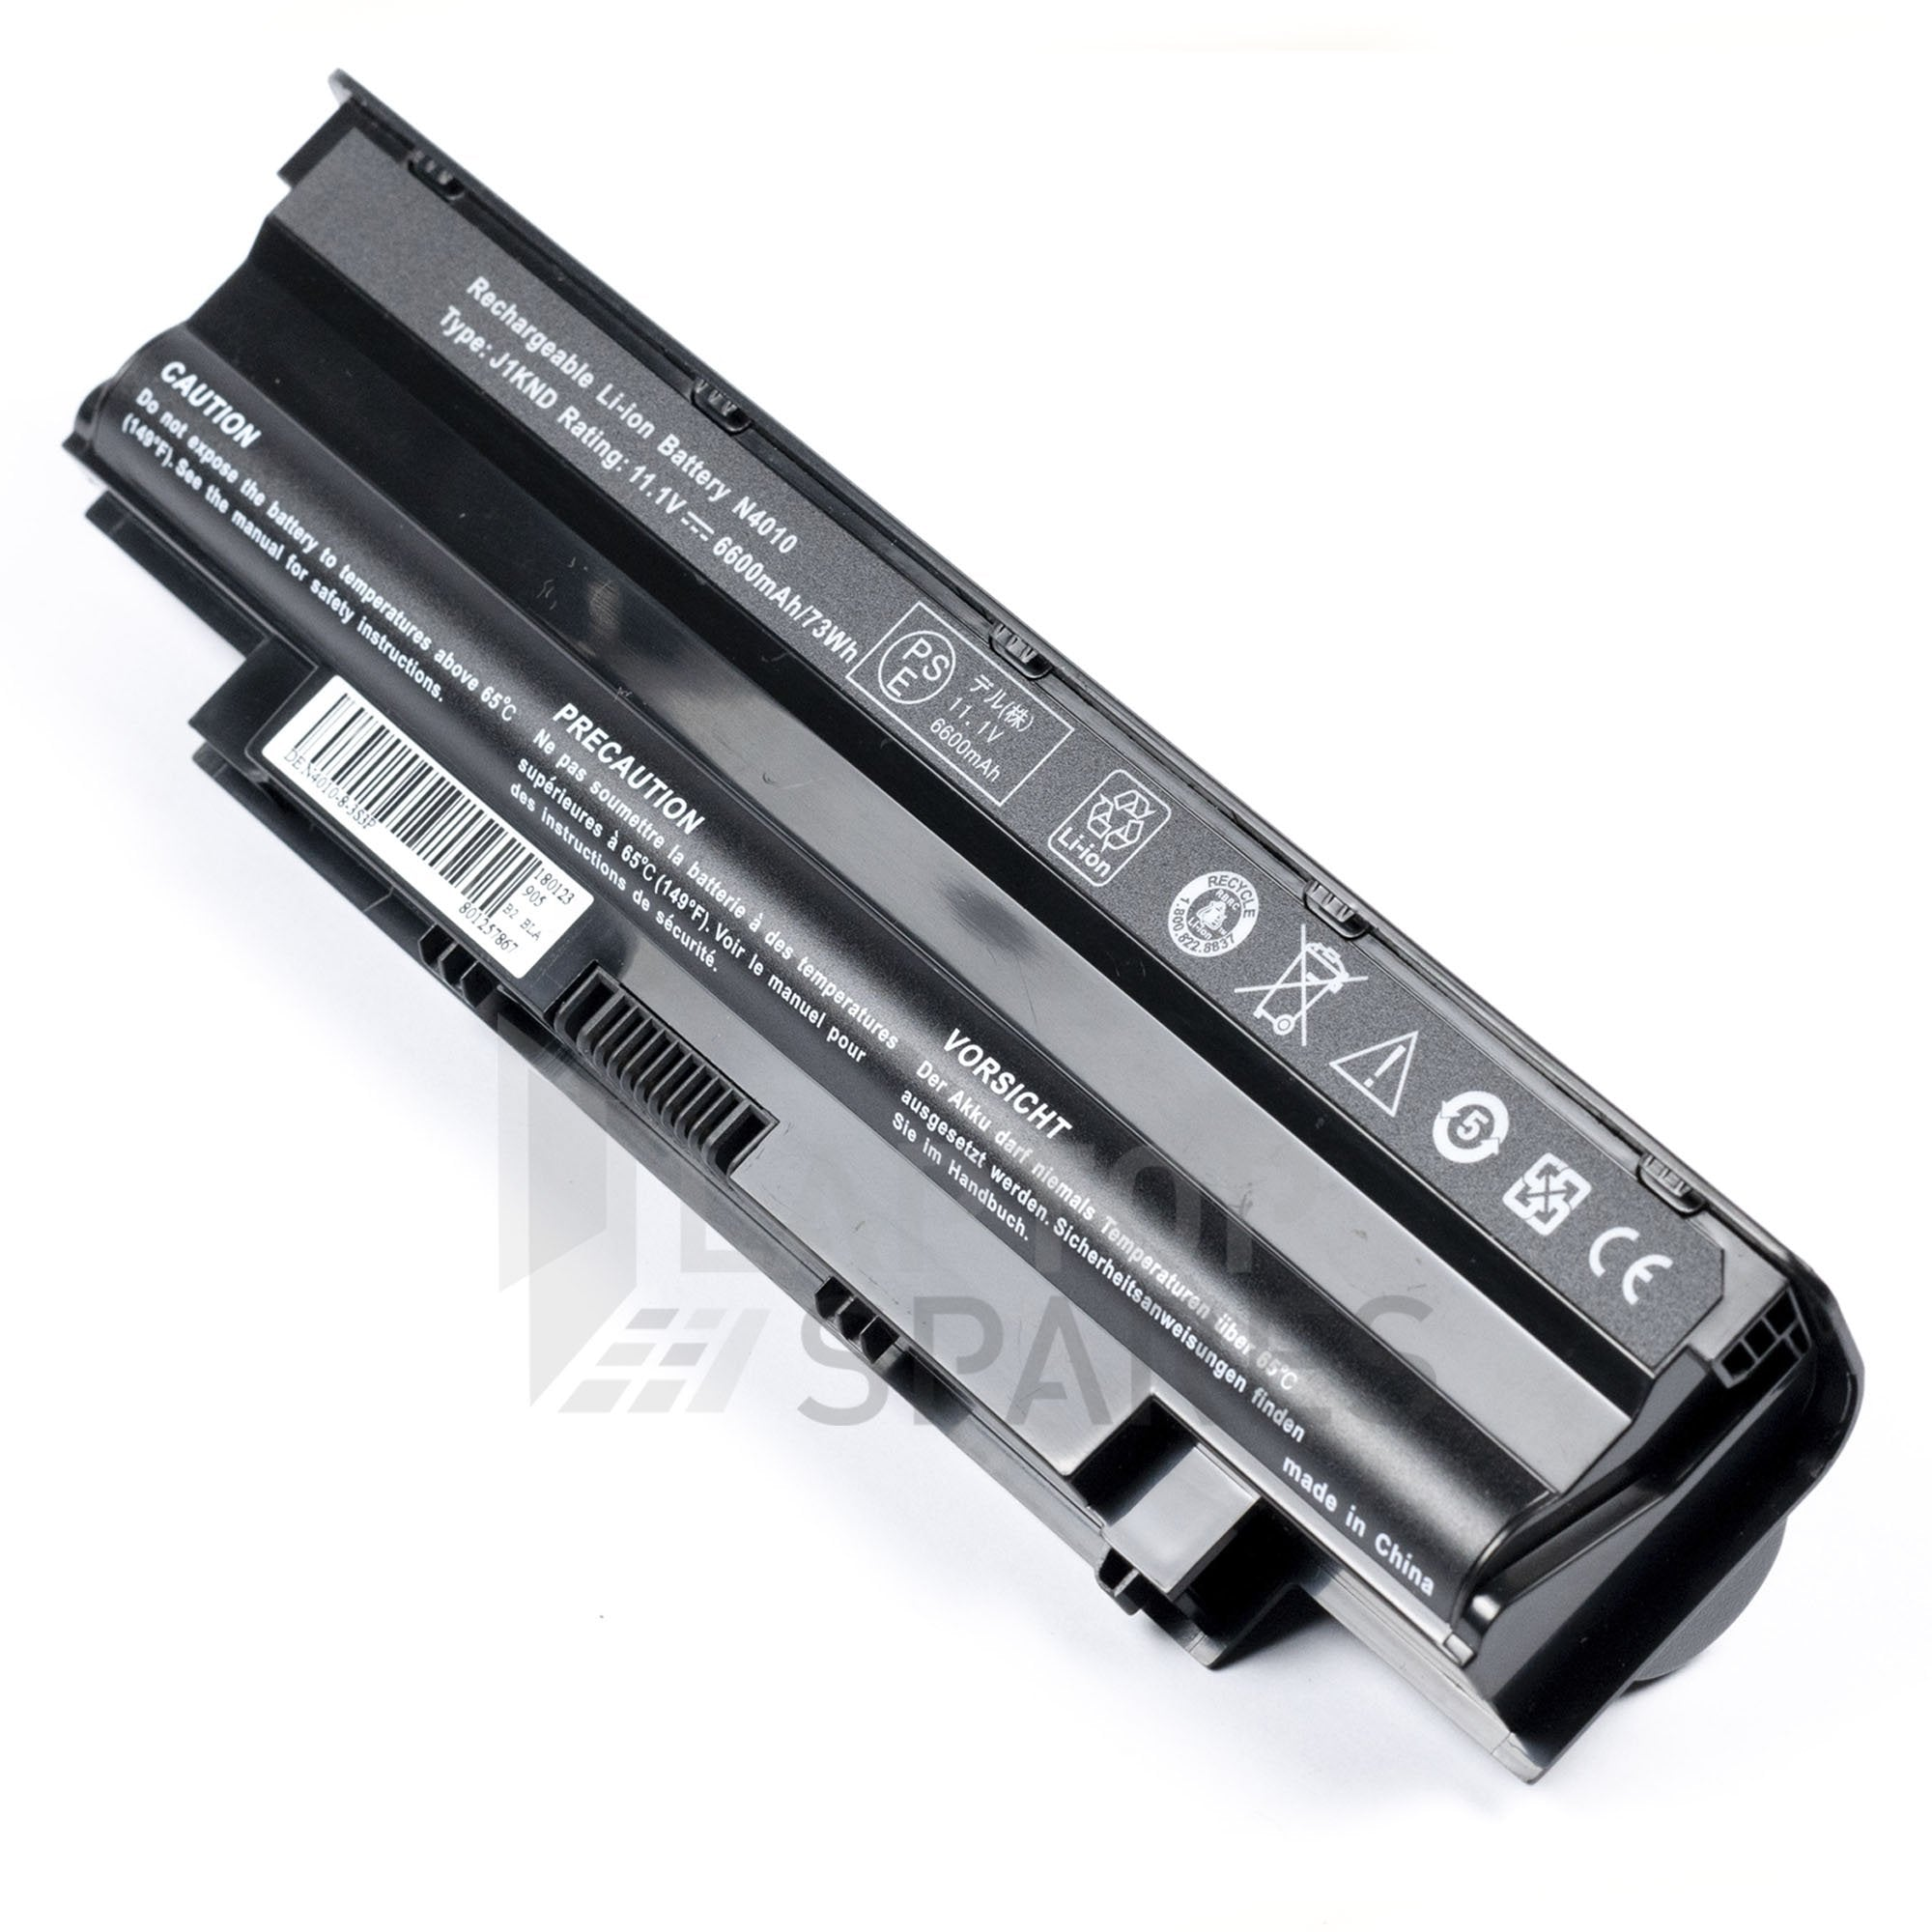 Dell Inspiron 15R 5010-D481 6600mAh 9 Cell Battery